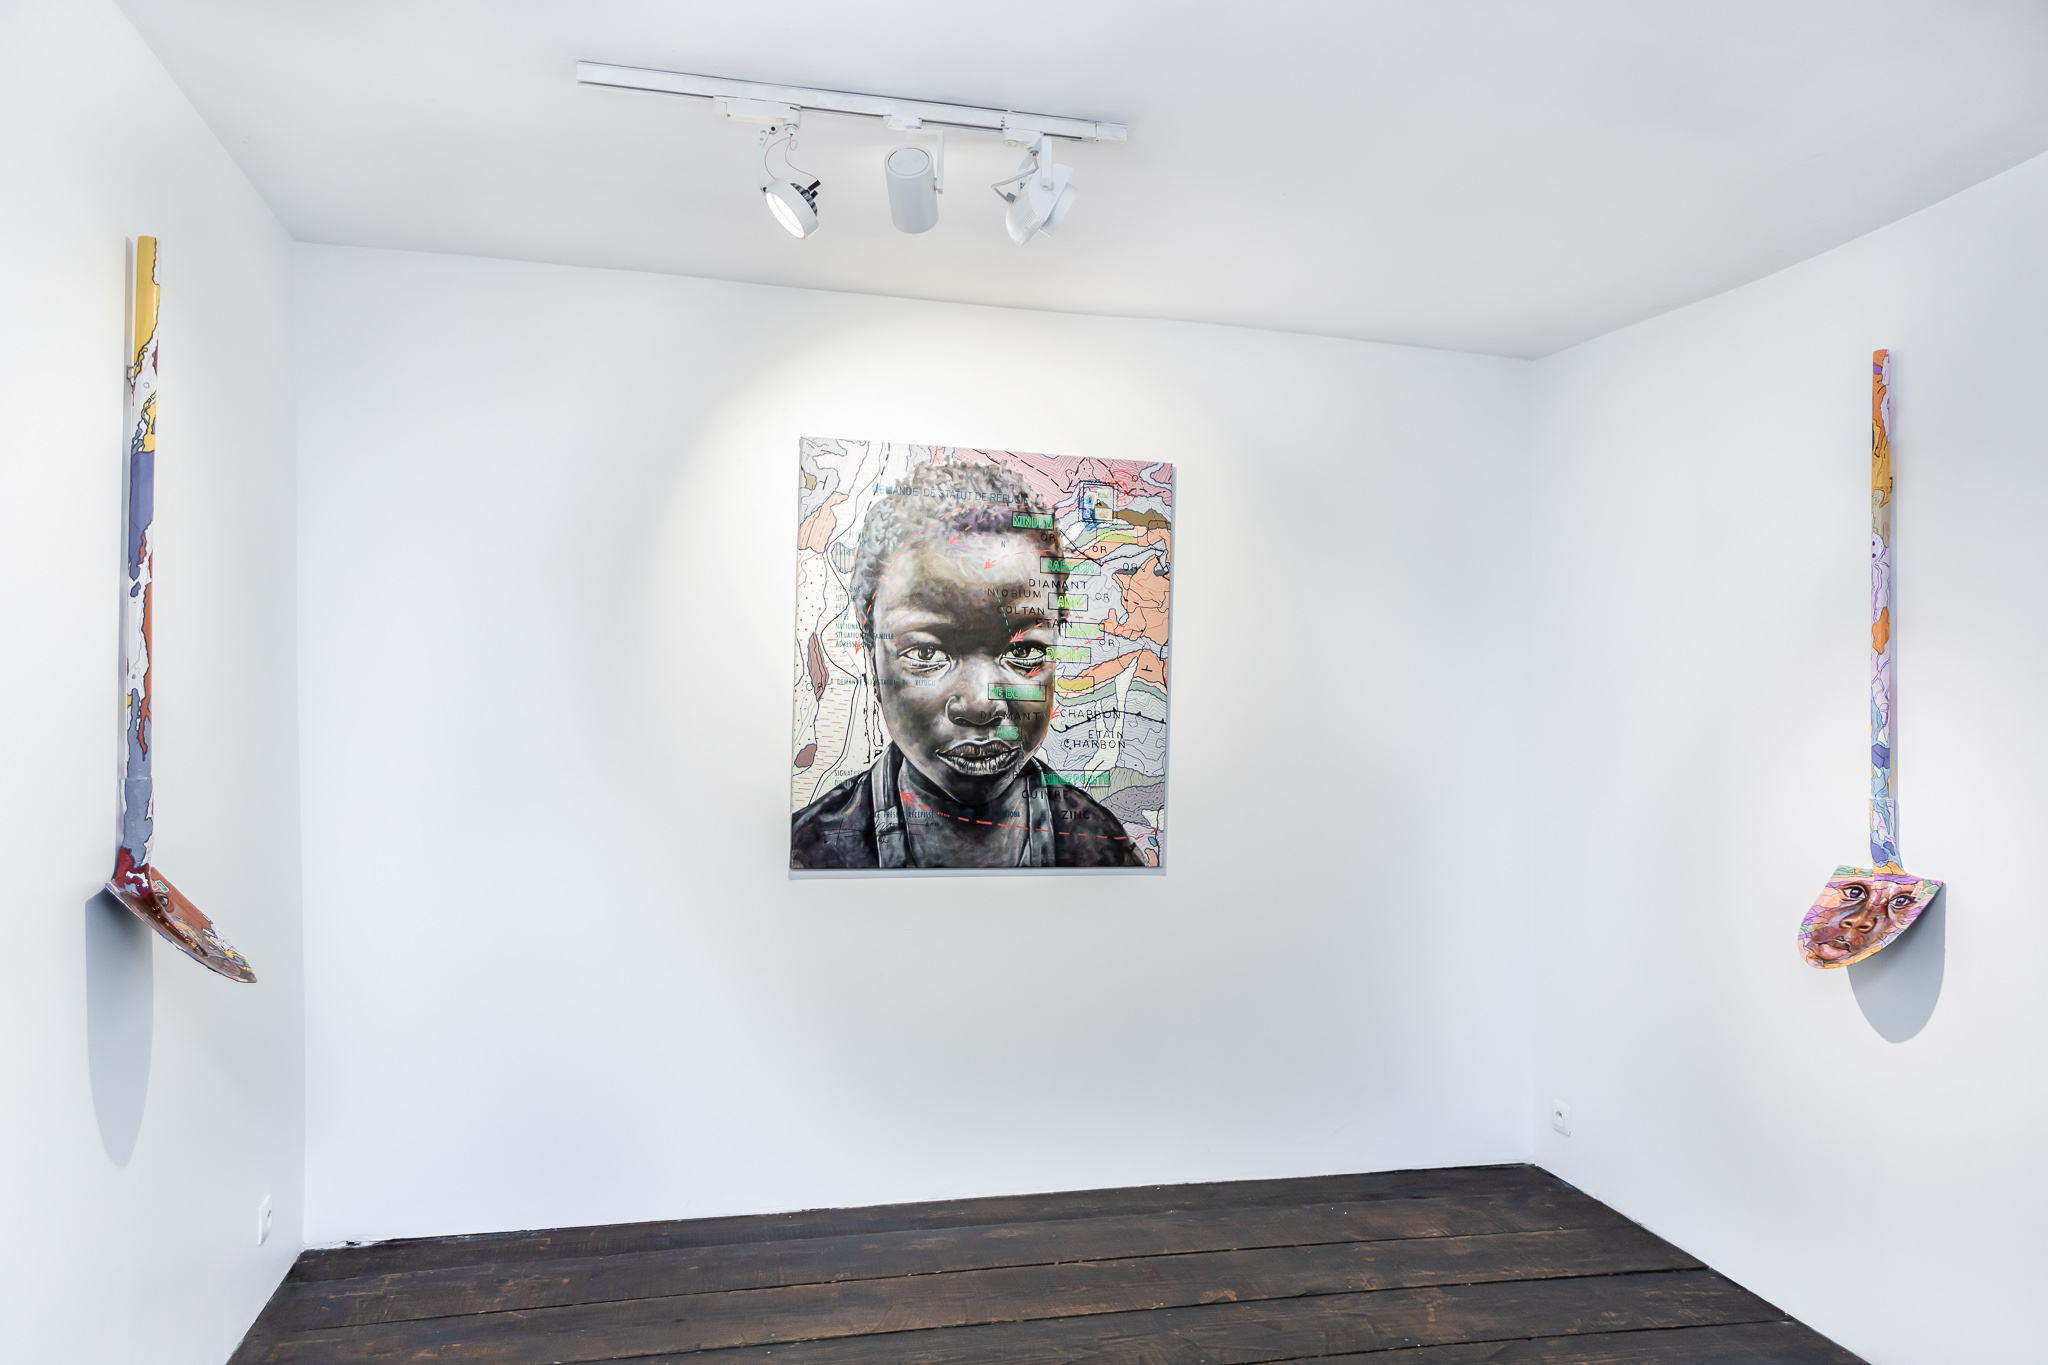 Installation view of Human@Condition' 2021. Courtesy of AFIKARIS Gallery